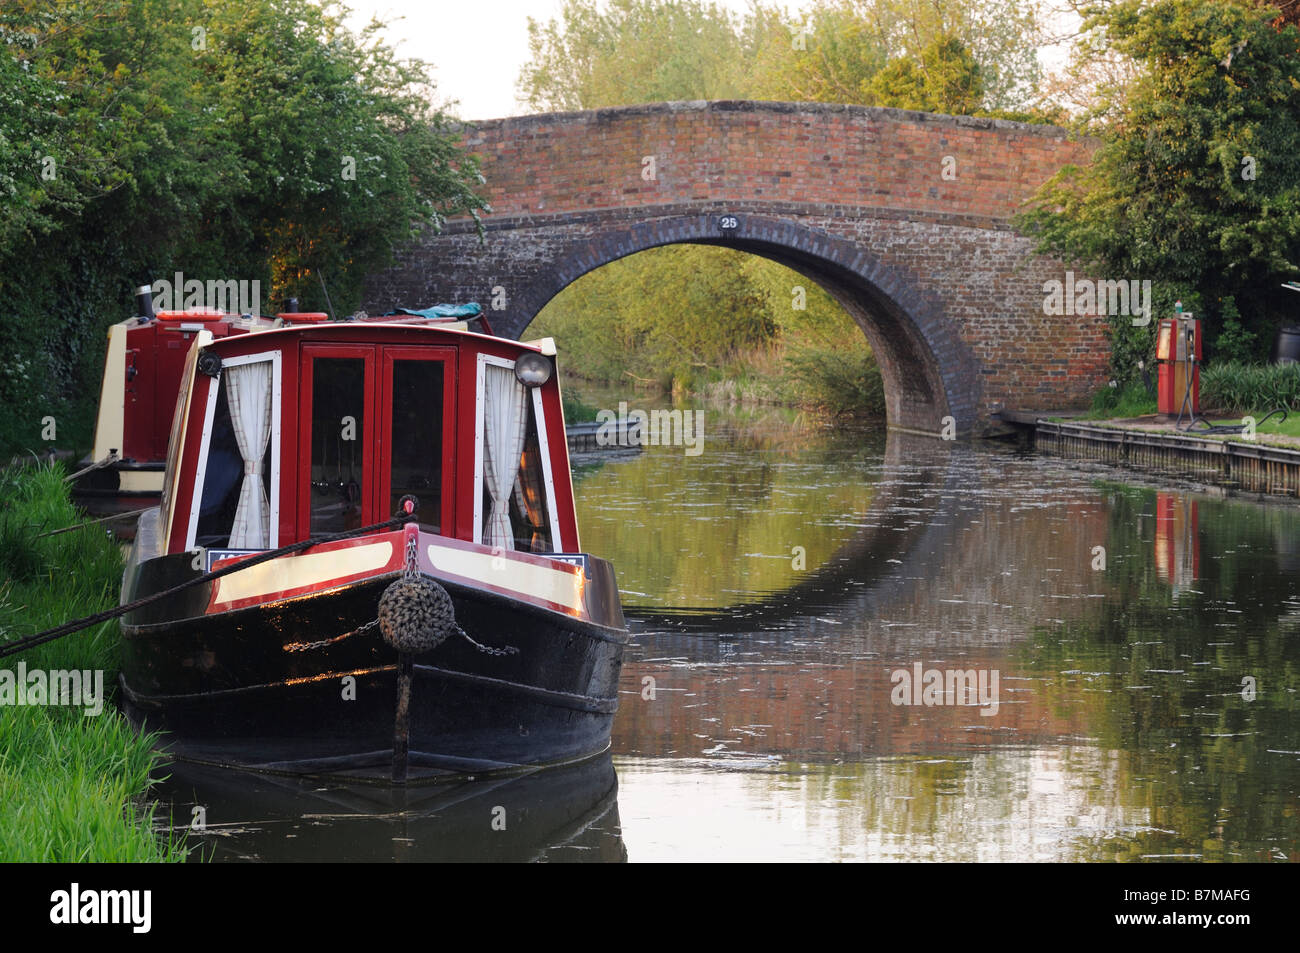 Canal boat moored next to over bridge on the Ashby canal near Market Bosworth - Stock Image